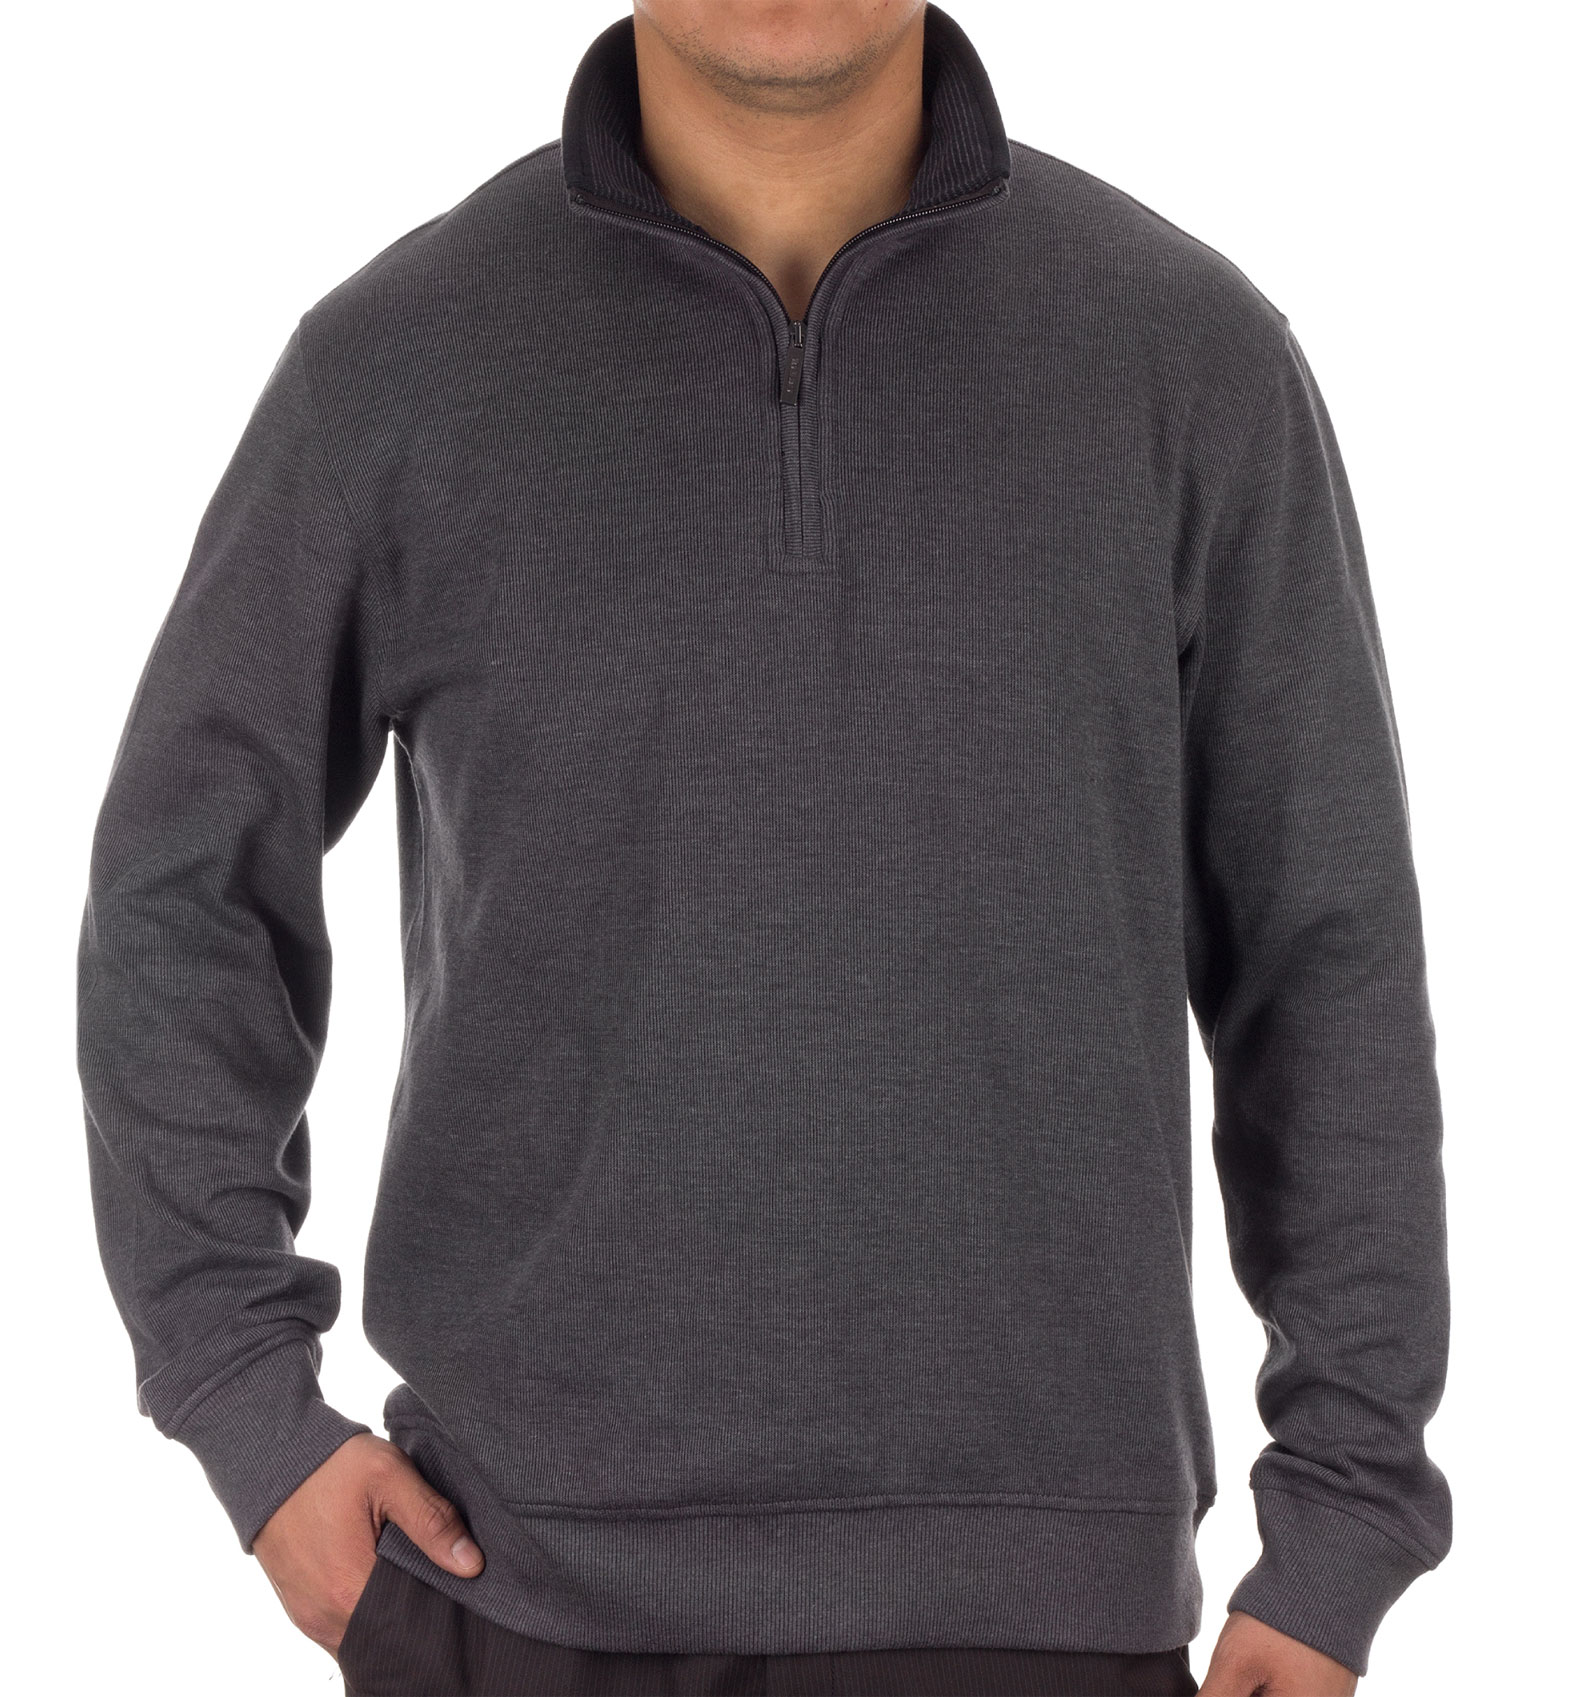 Van Heusen Mens 1/4-Zip Sweater